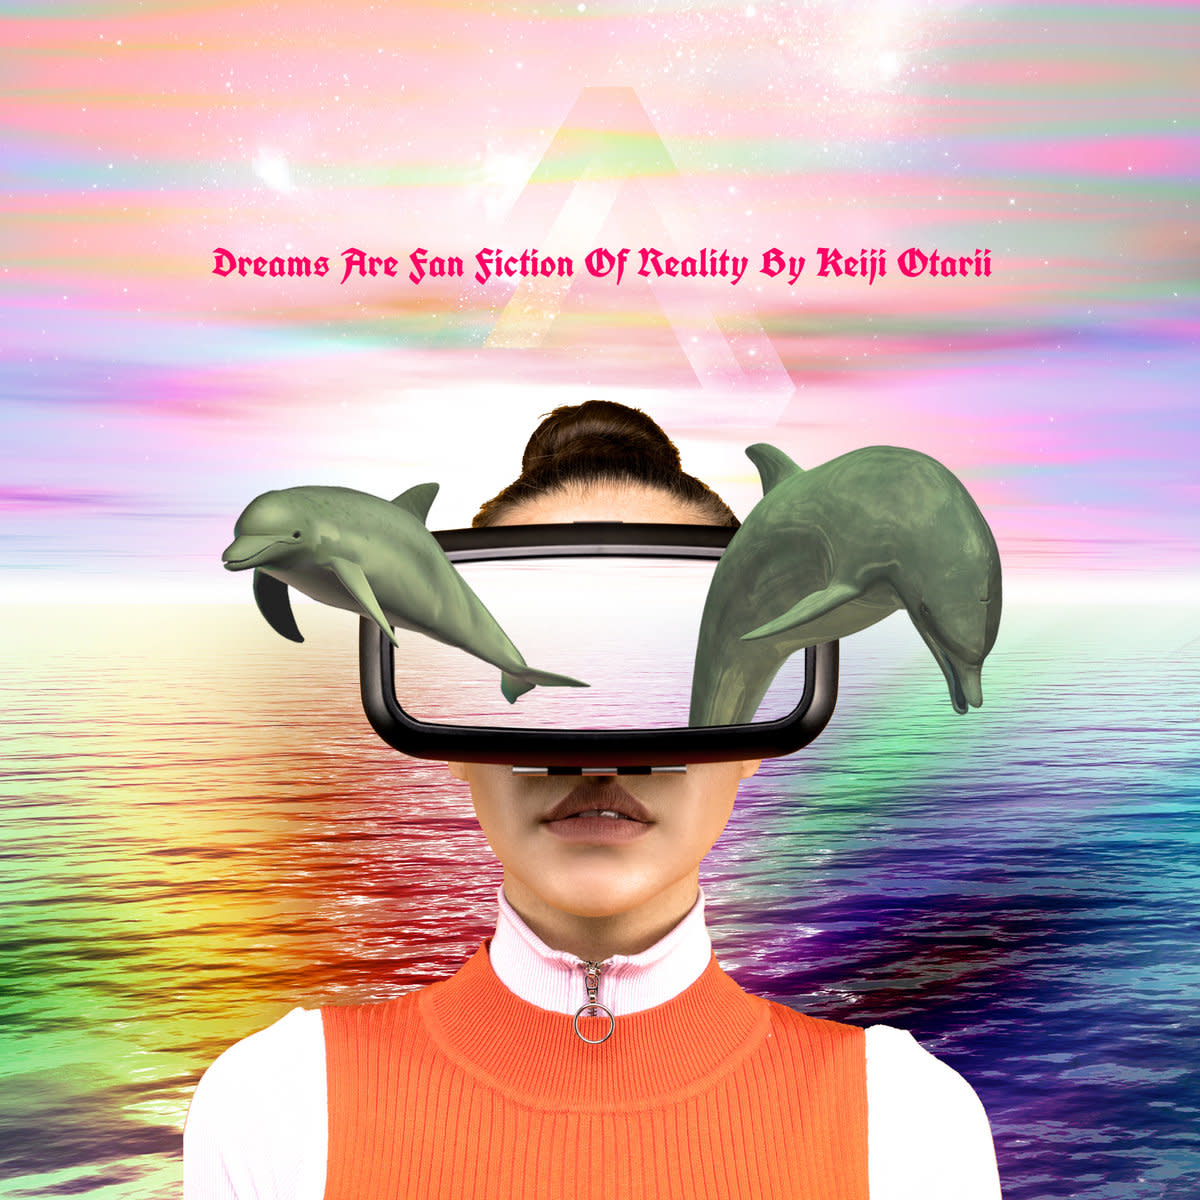 chiptune-album-review-dreams-are-fan-fiction-of-reality-by-keiji-otarii